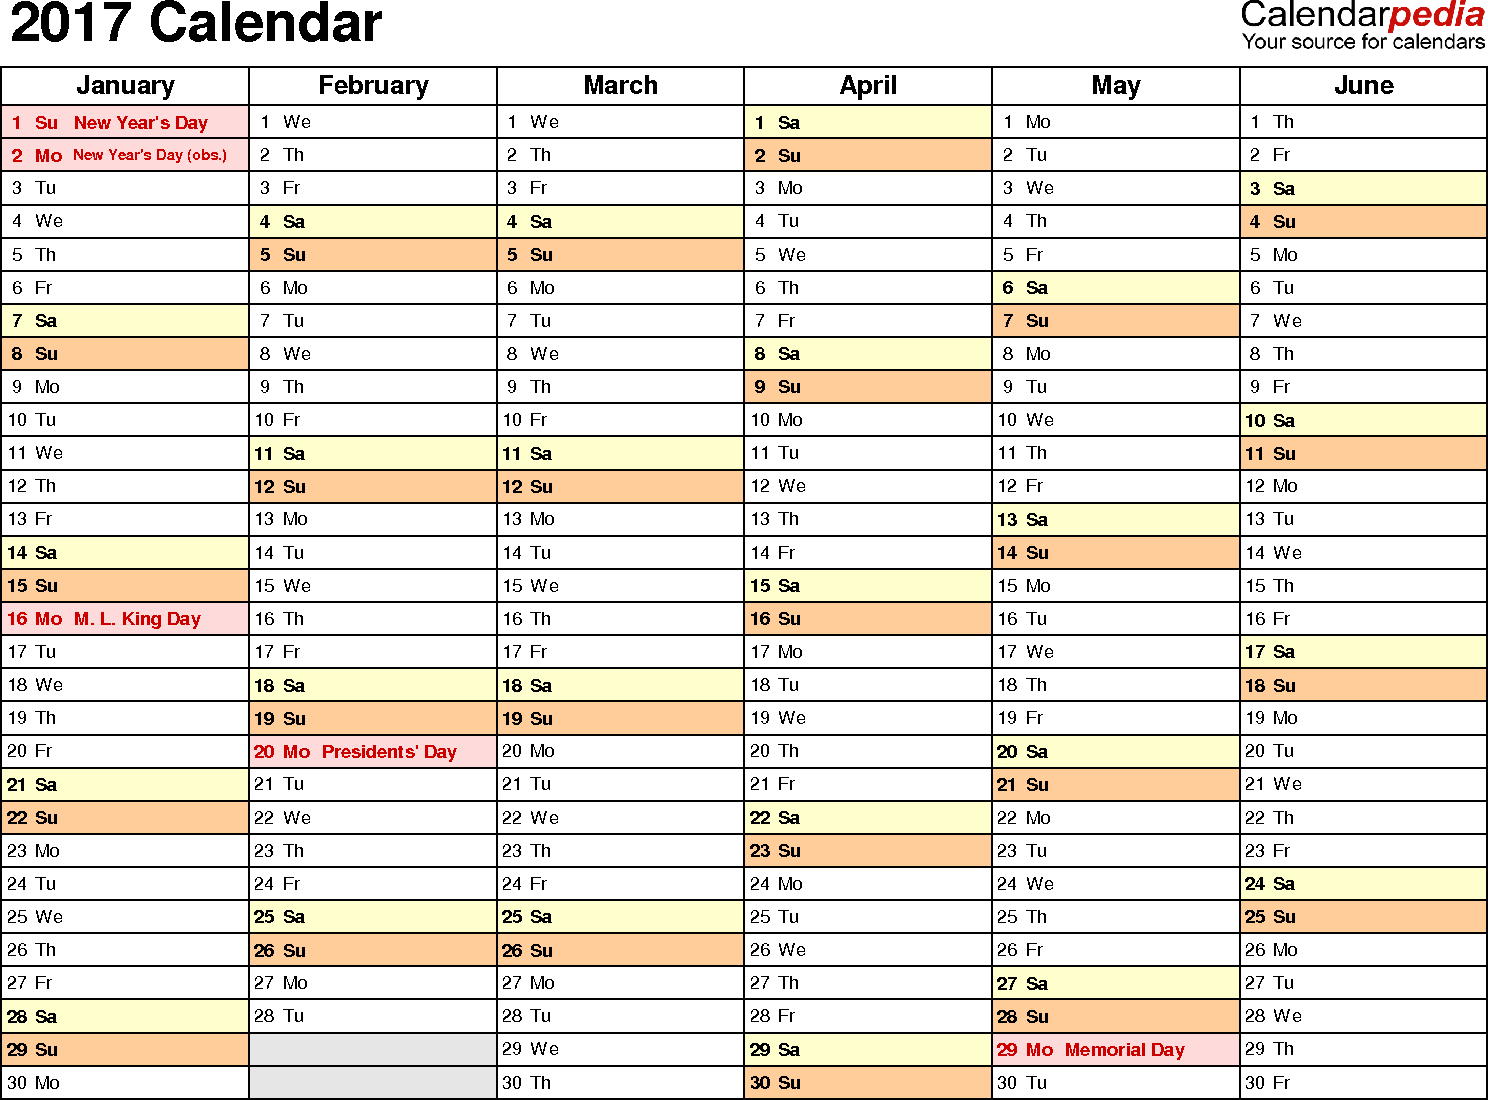 Ediblewildsus  Winsome  Calendar  Download  Free Printable Excel Templates Xls With Heavenly Template   Calendar For Excel Months Horizontally  Pages Landscape Orientation With Cool Using Sql In Excel Also If And If Excel In Addition Excel If Color And Rand Function Excel As Well As Rename Worksheet Excel Additionally Excel If Else If From Calendarpediacom With Ediblewildsus  Heavenly  Calendar  Download  Free Printable Excel Templates Xls With Cool Template   Calendar For Excel Months Horizontally  Pages Landscape Orientation And Winsome Using Sql In Excel Also If And If Excel In Addition Excel If Color From Calendarpediacom